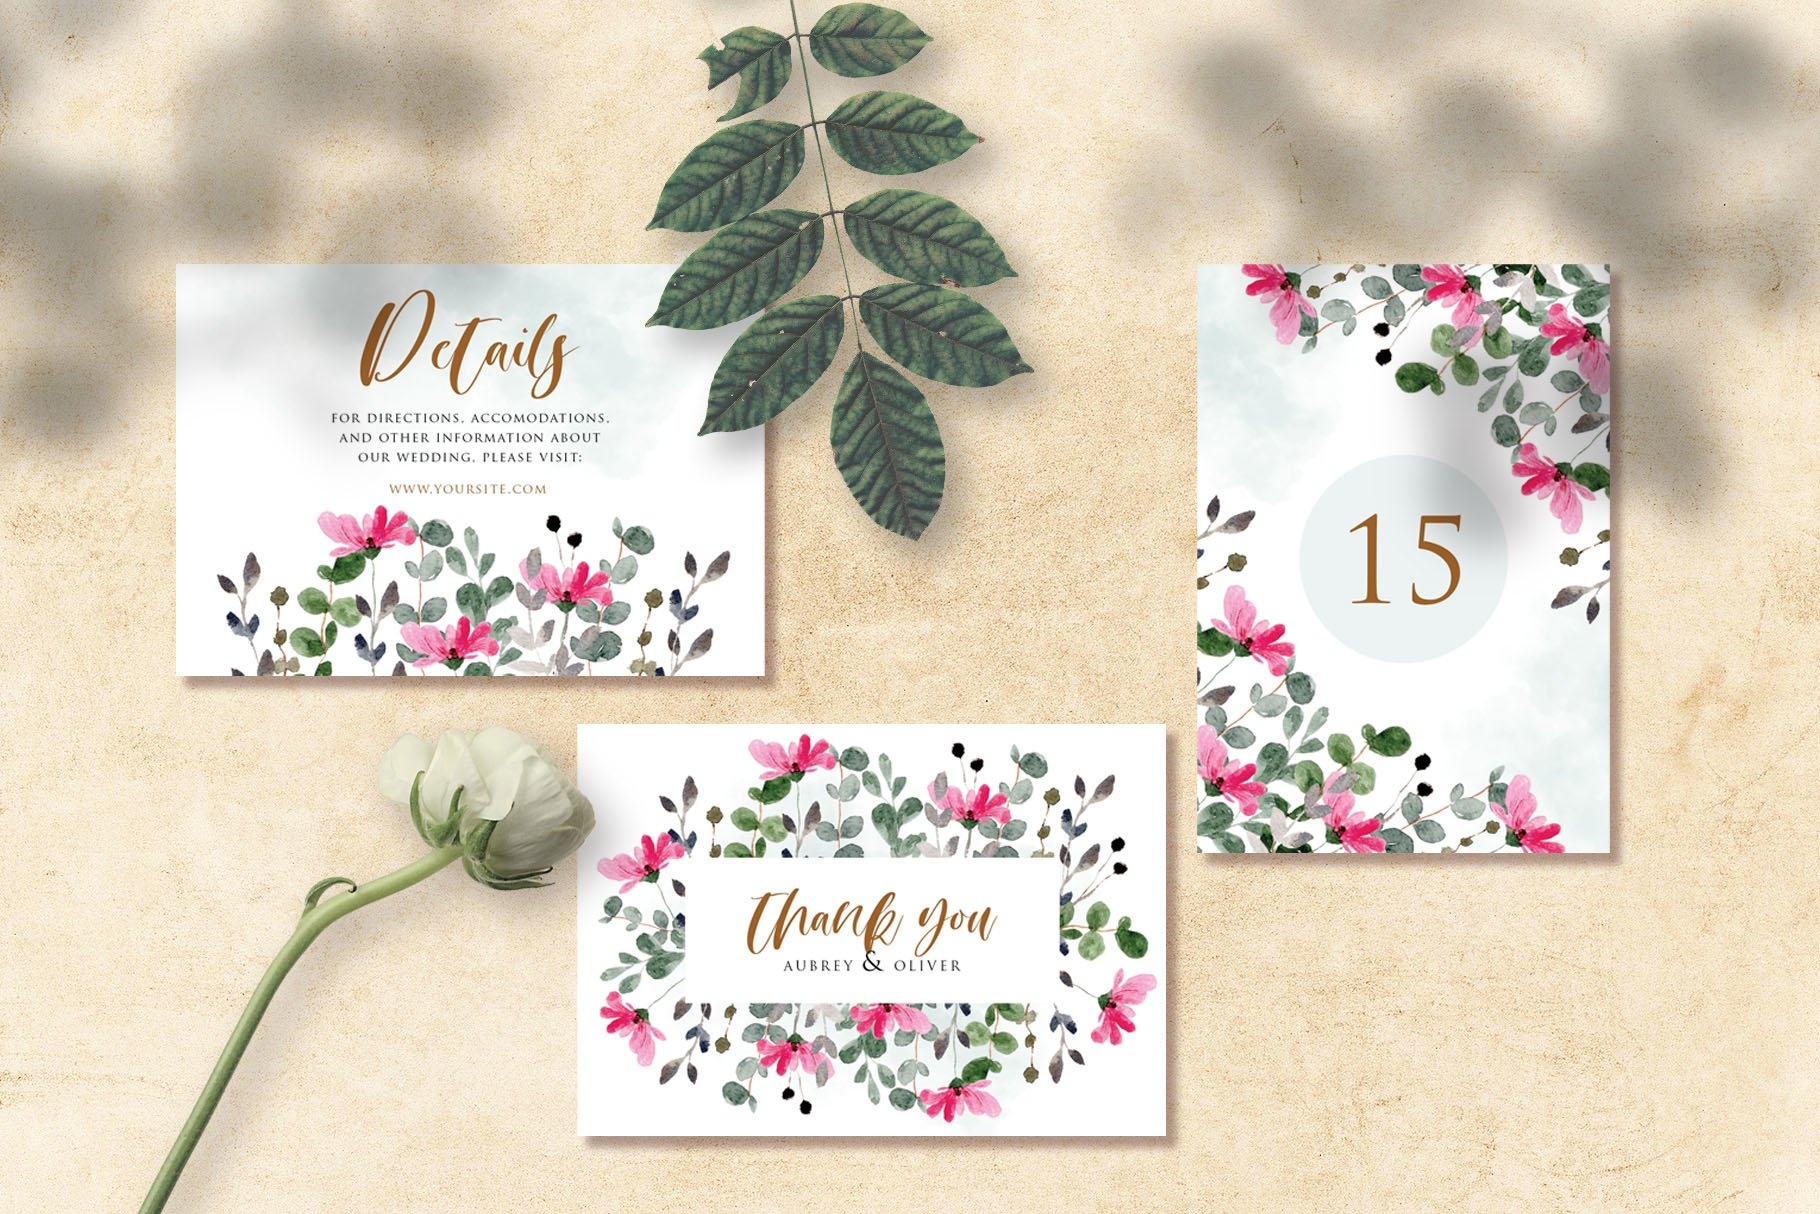 Flower and Leaves Watercolor Wedding Invitation Suite example image 2